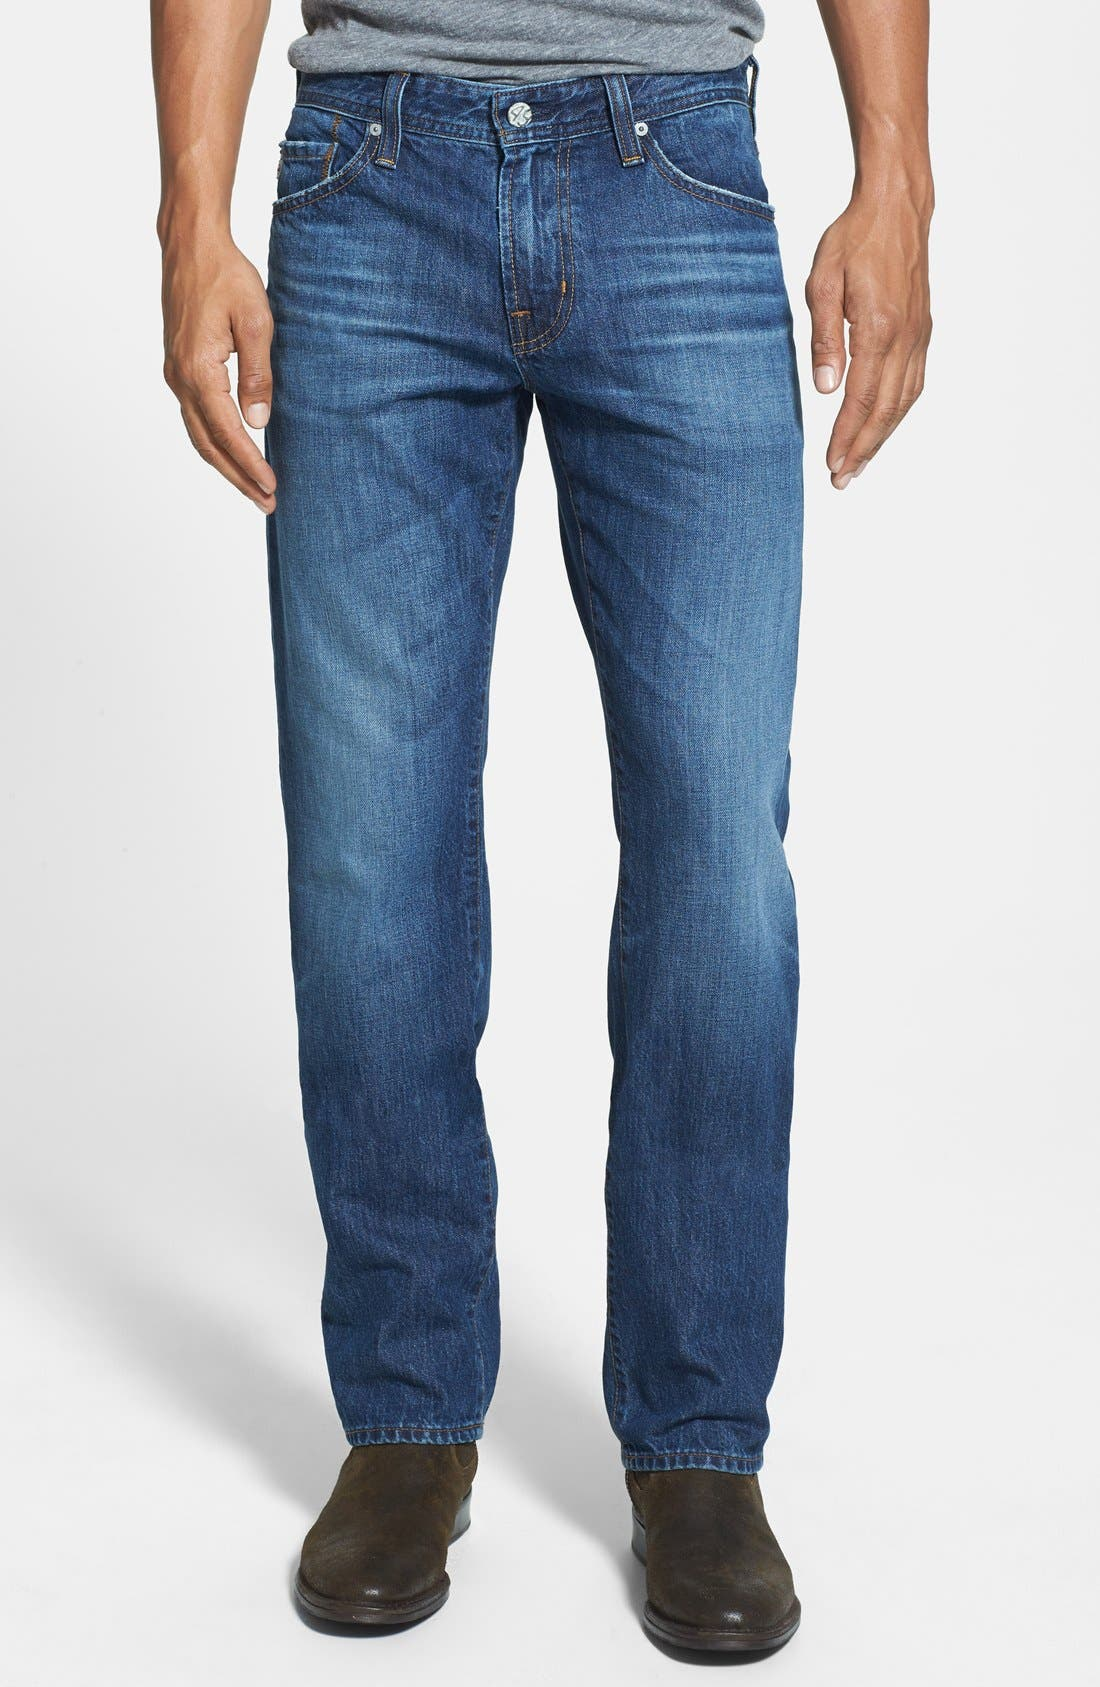 Alternate Image 1 Selected - AG 'Graduate' Tailored Fit Straight Leg Jeans (4 Year Idlewood)